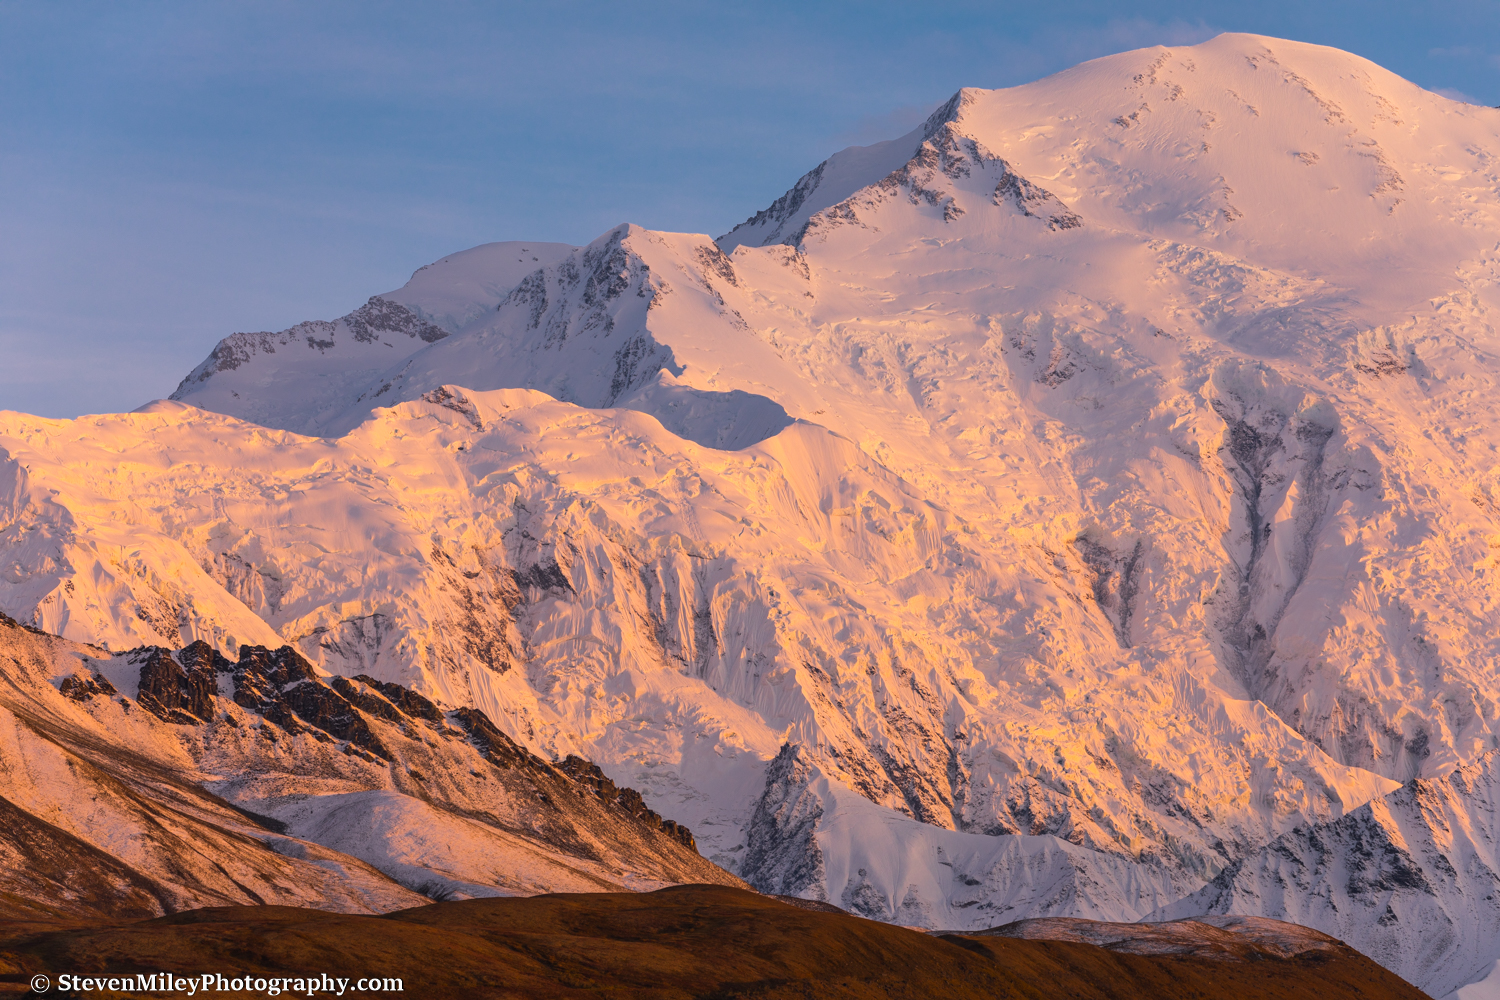 Denali's Pioneer Ridge and North Peak are lit up at sunset.